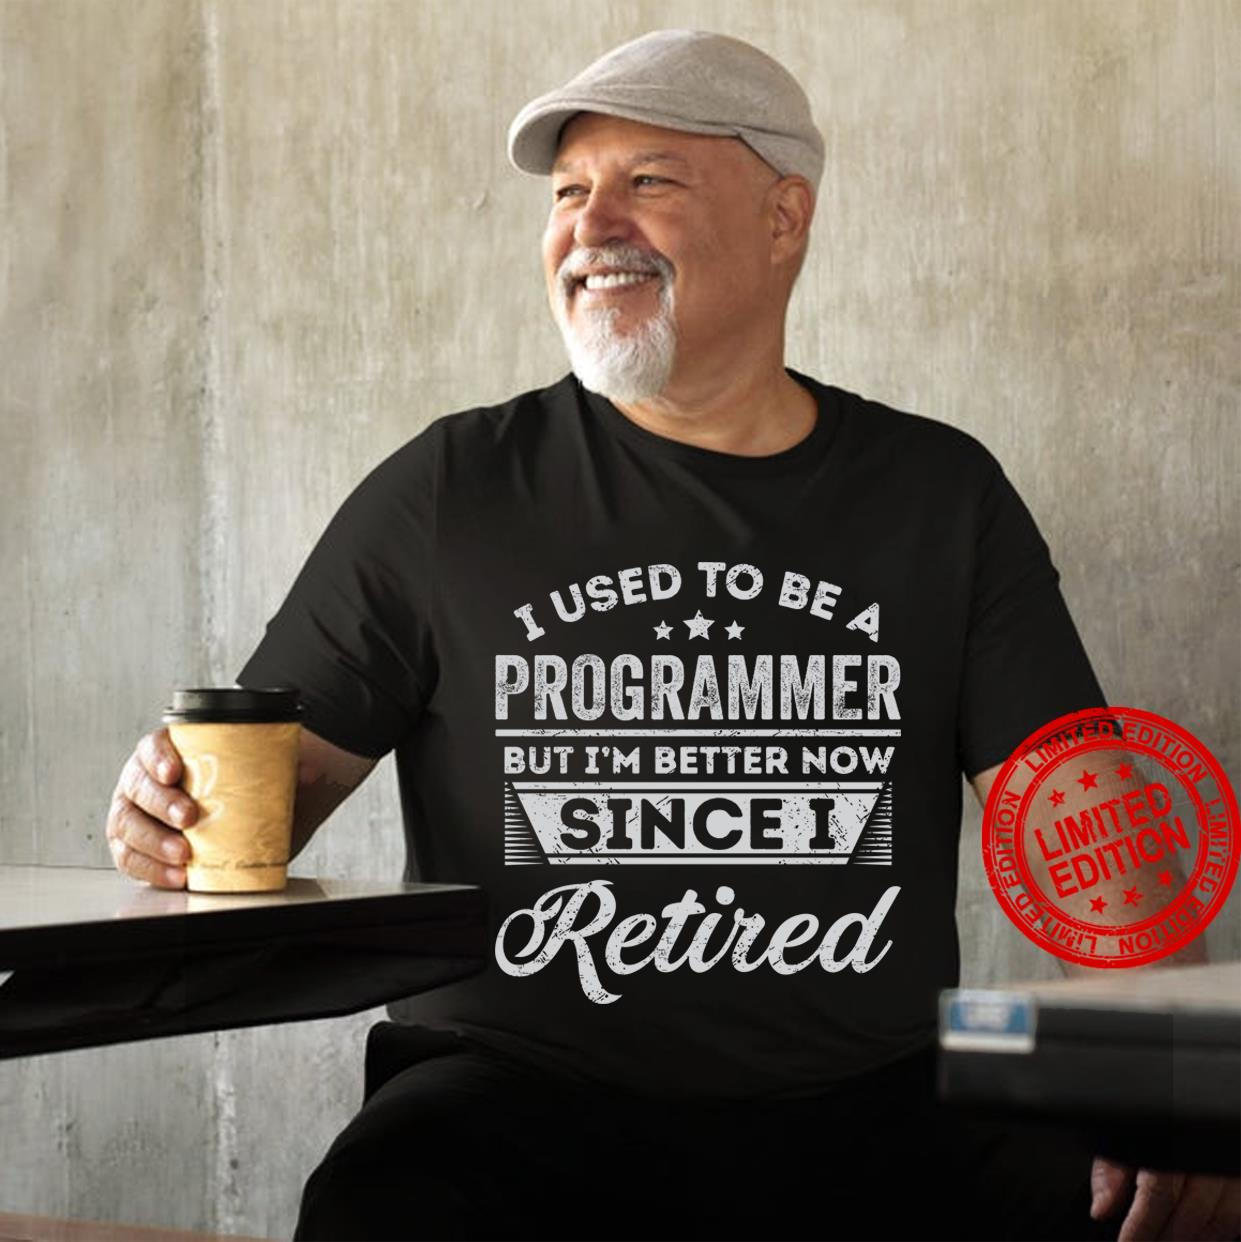 I Used To Be A Programmer But I'm Better Now Since I Retired Shirt